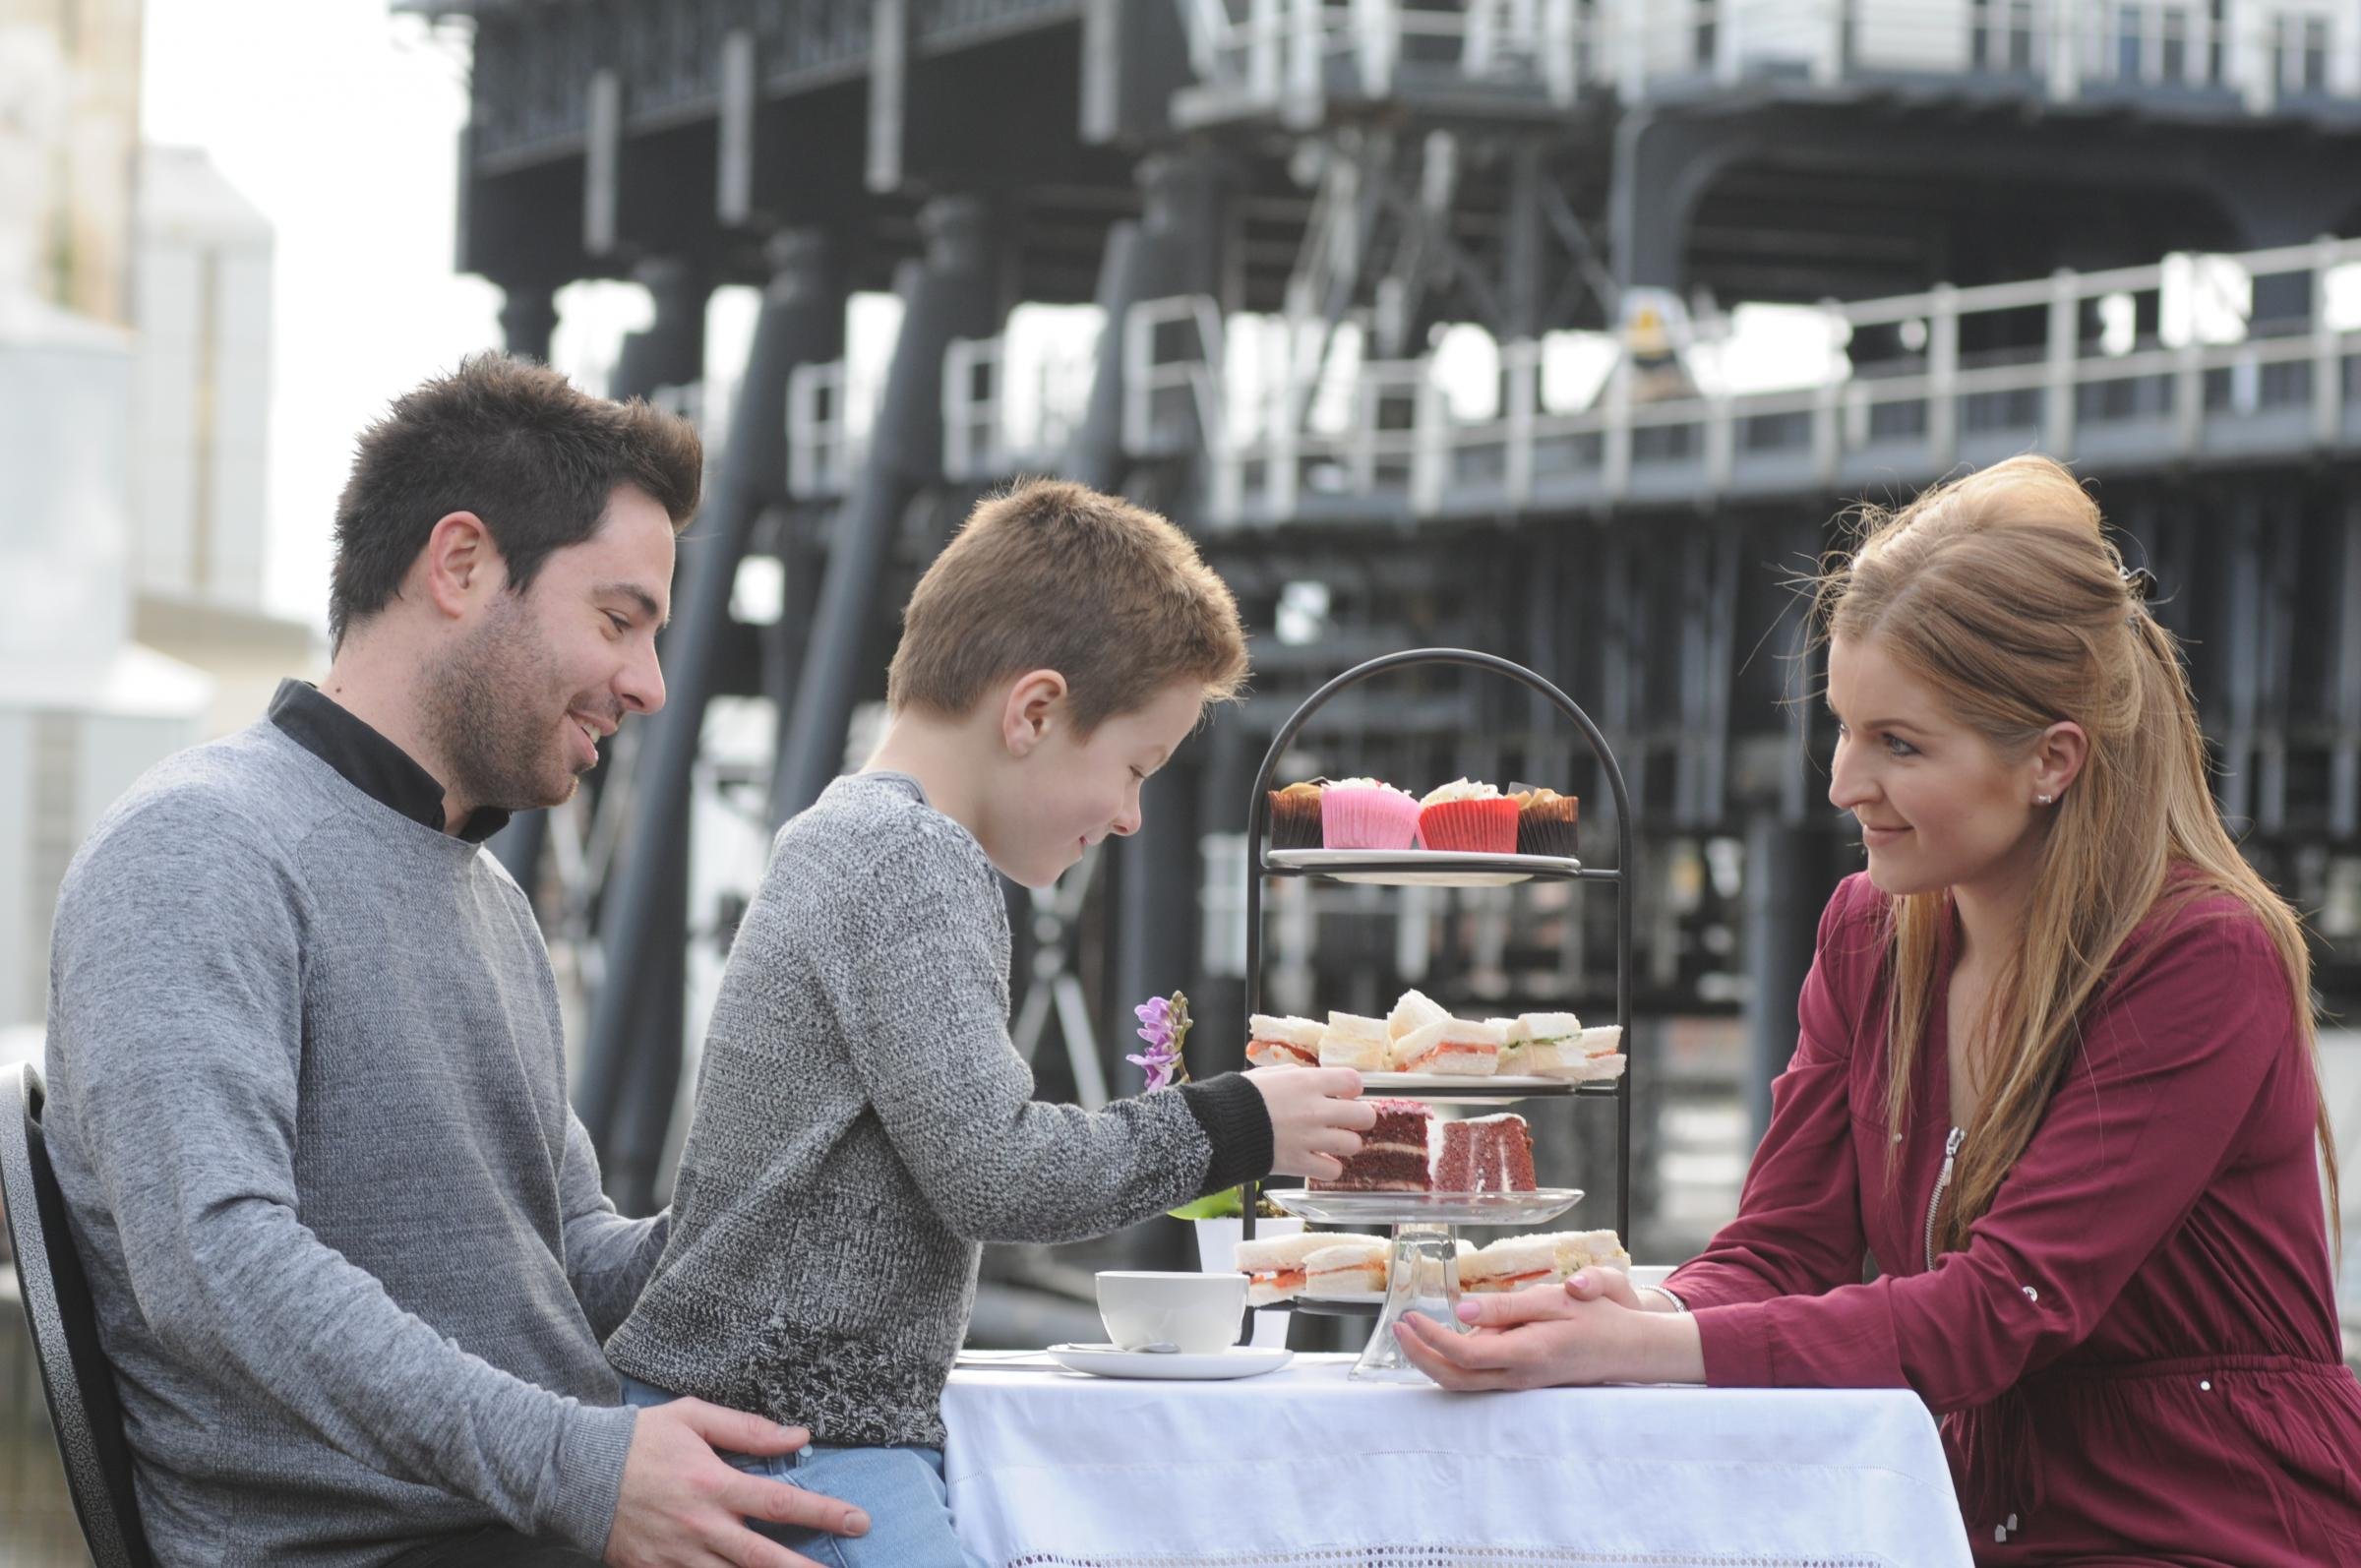 Afternoon Tea and Boat Trip at Anderton Boat Lift